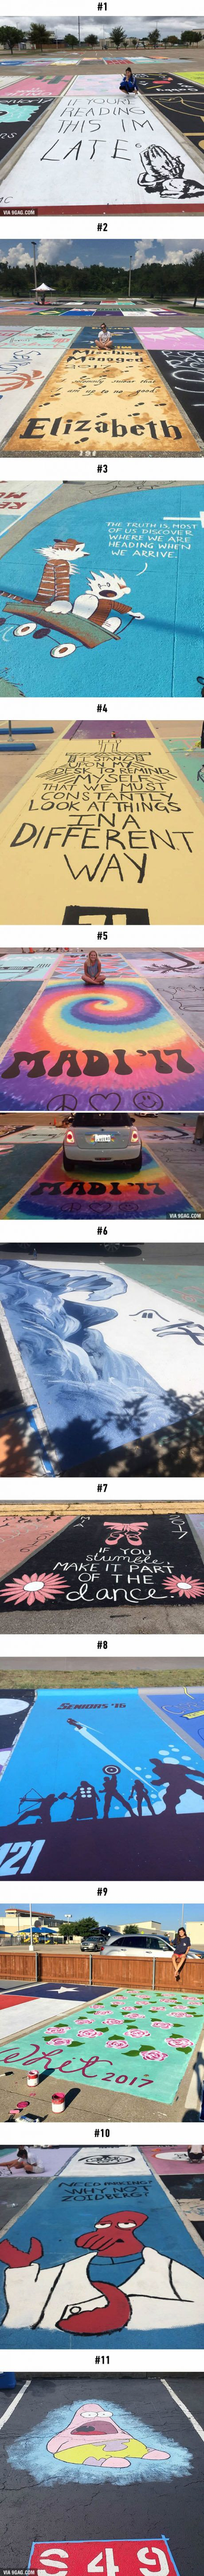 High School Seniors Paint Their Parking Spots